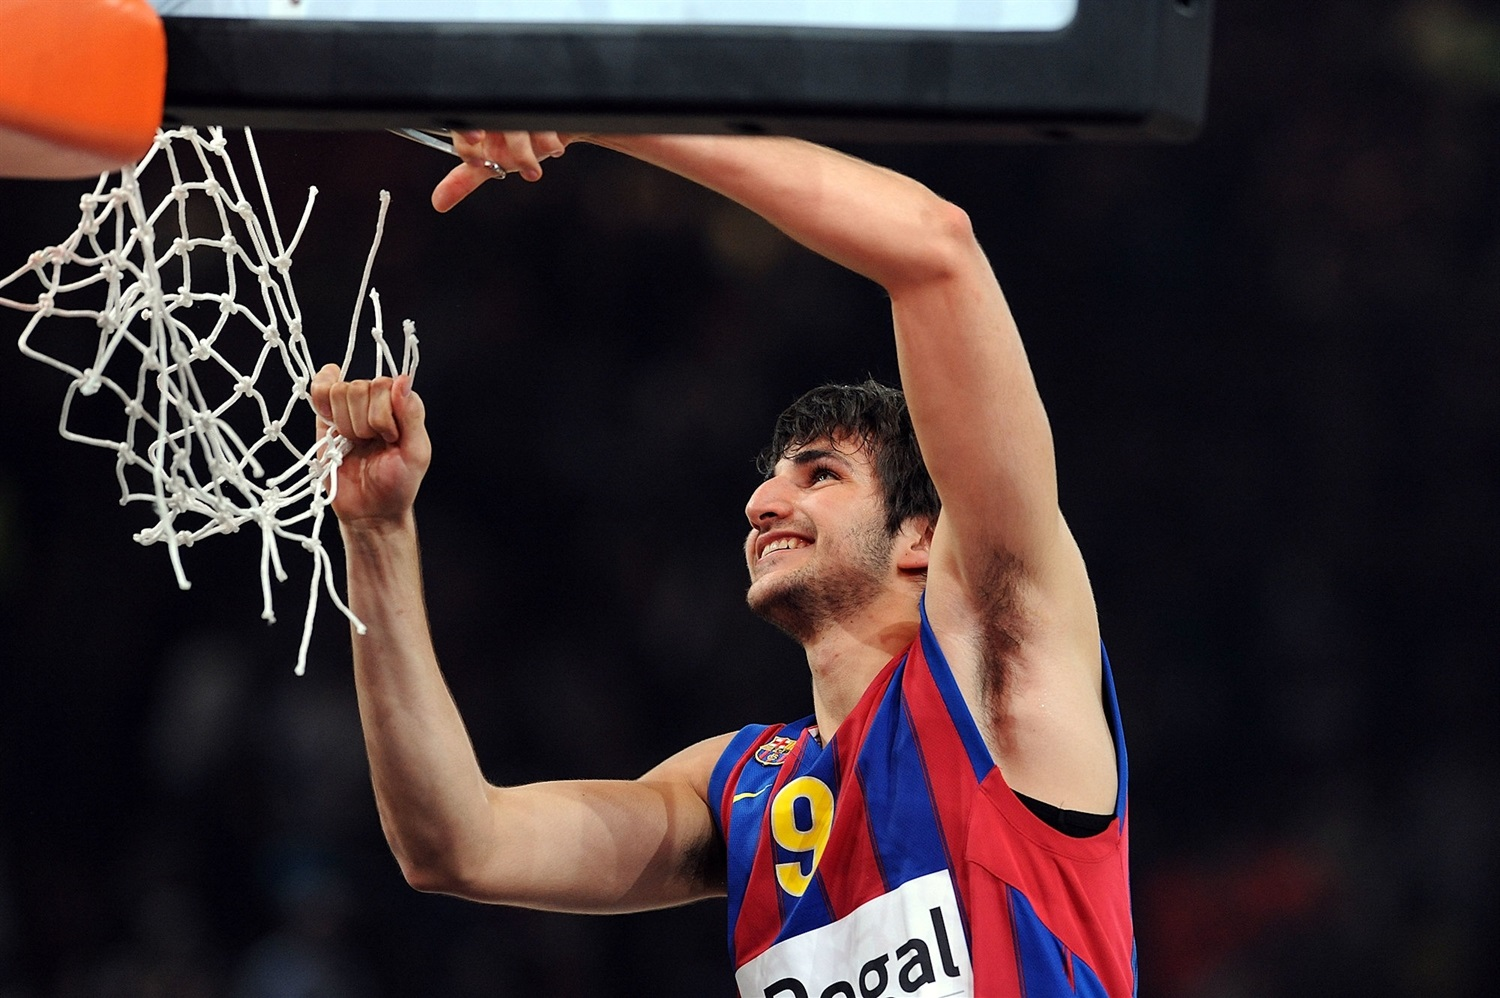 Ricky Rubio - Regal FC Barcelona Champ Euroleague 2010 - Final Four Paris 2010